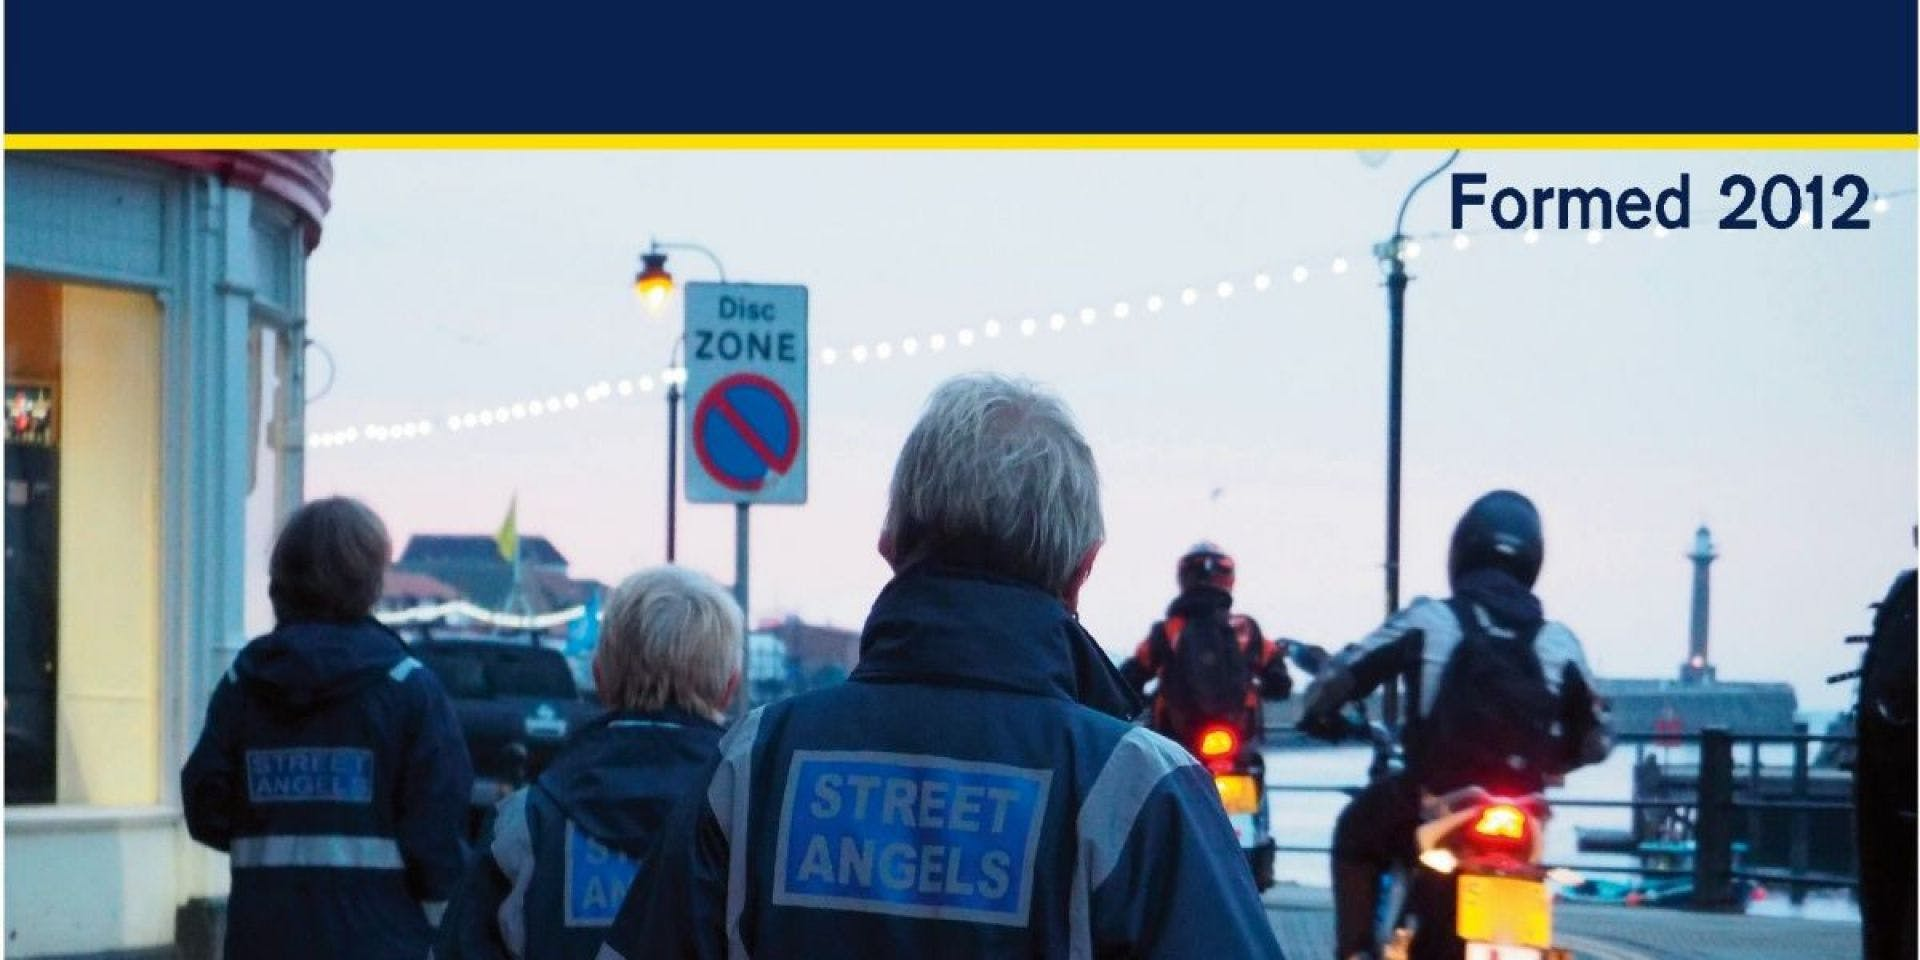 Street Angels in Whitby